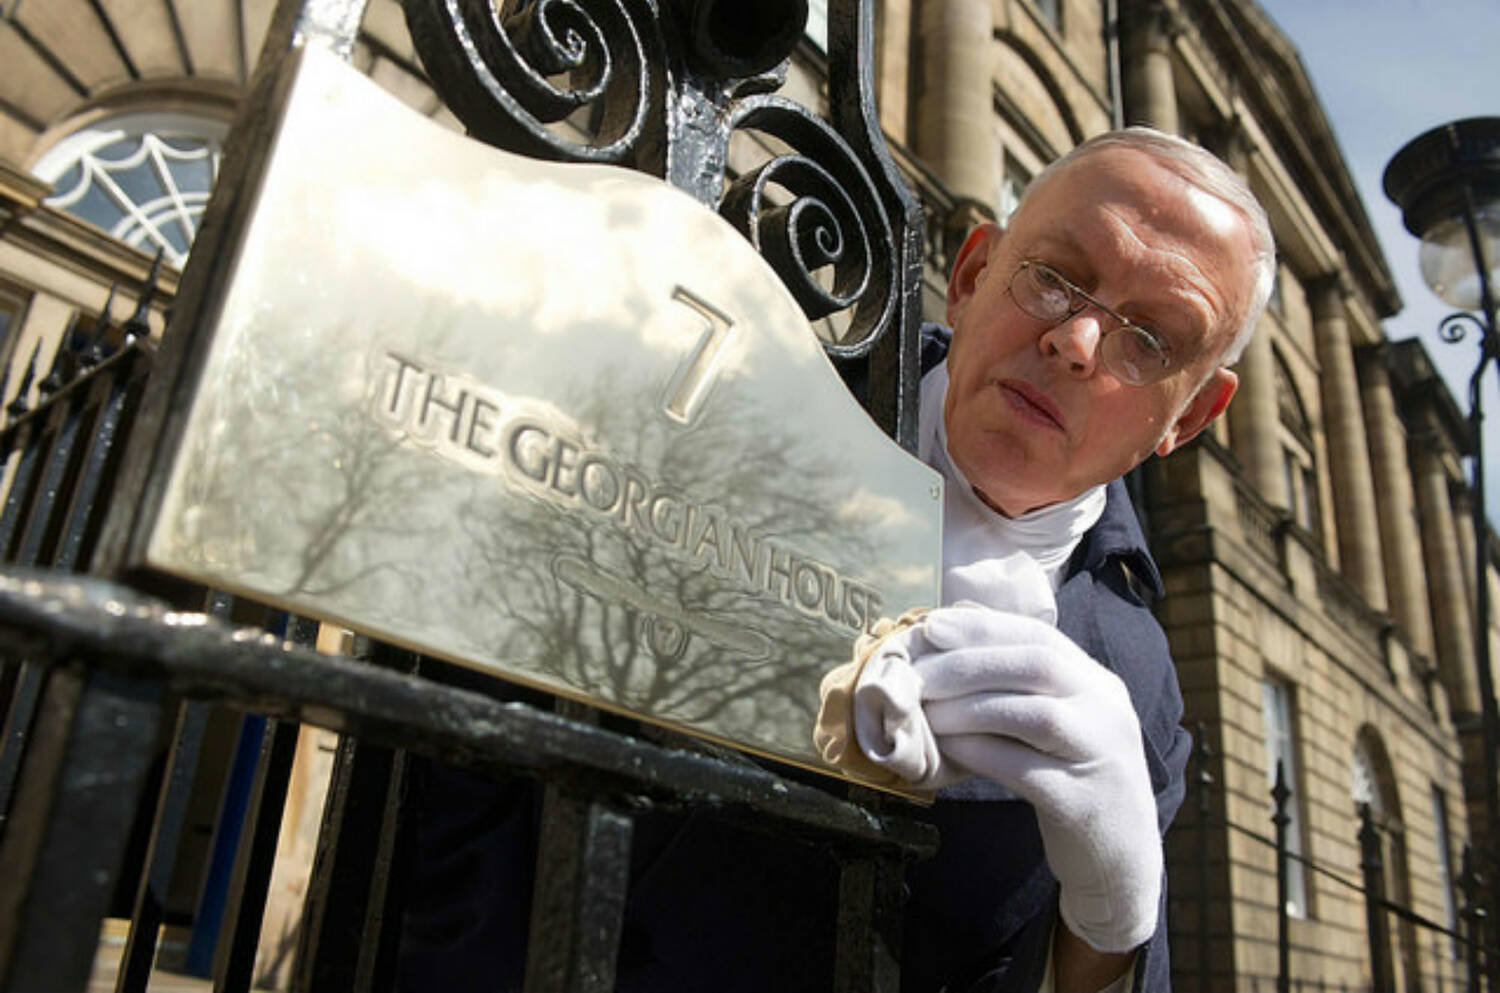 A man with white cotton gloves is polishing a brass plaque which says 7, The Georgian House.